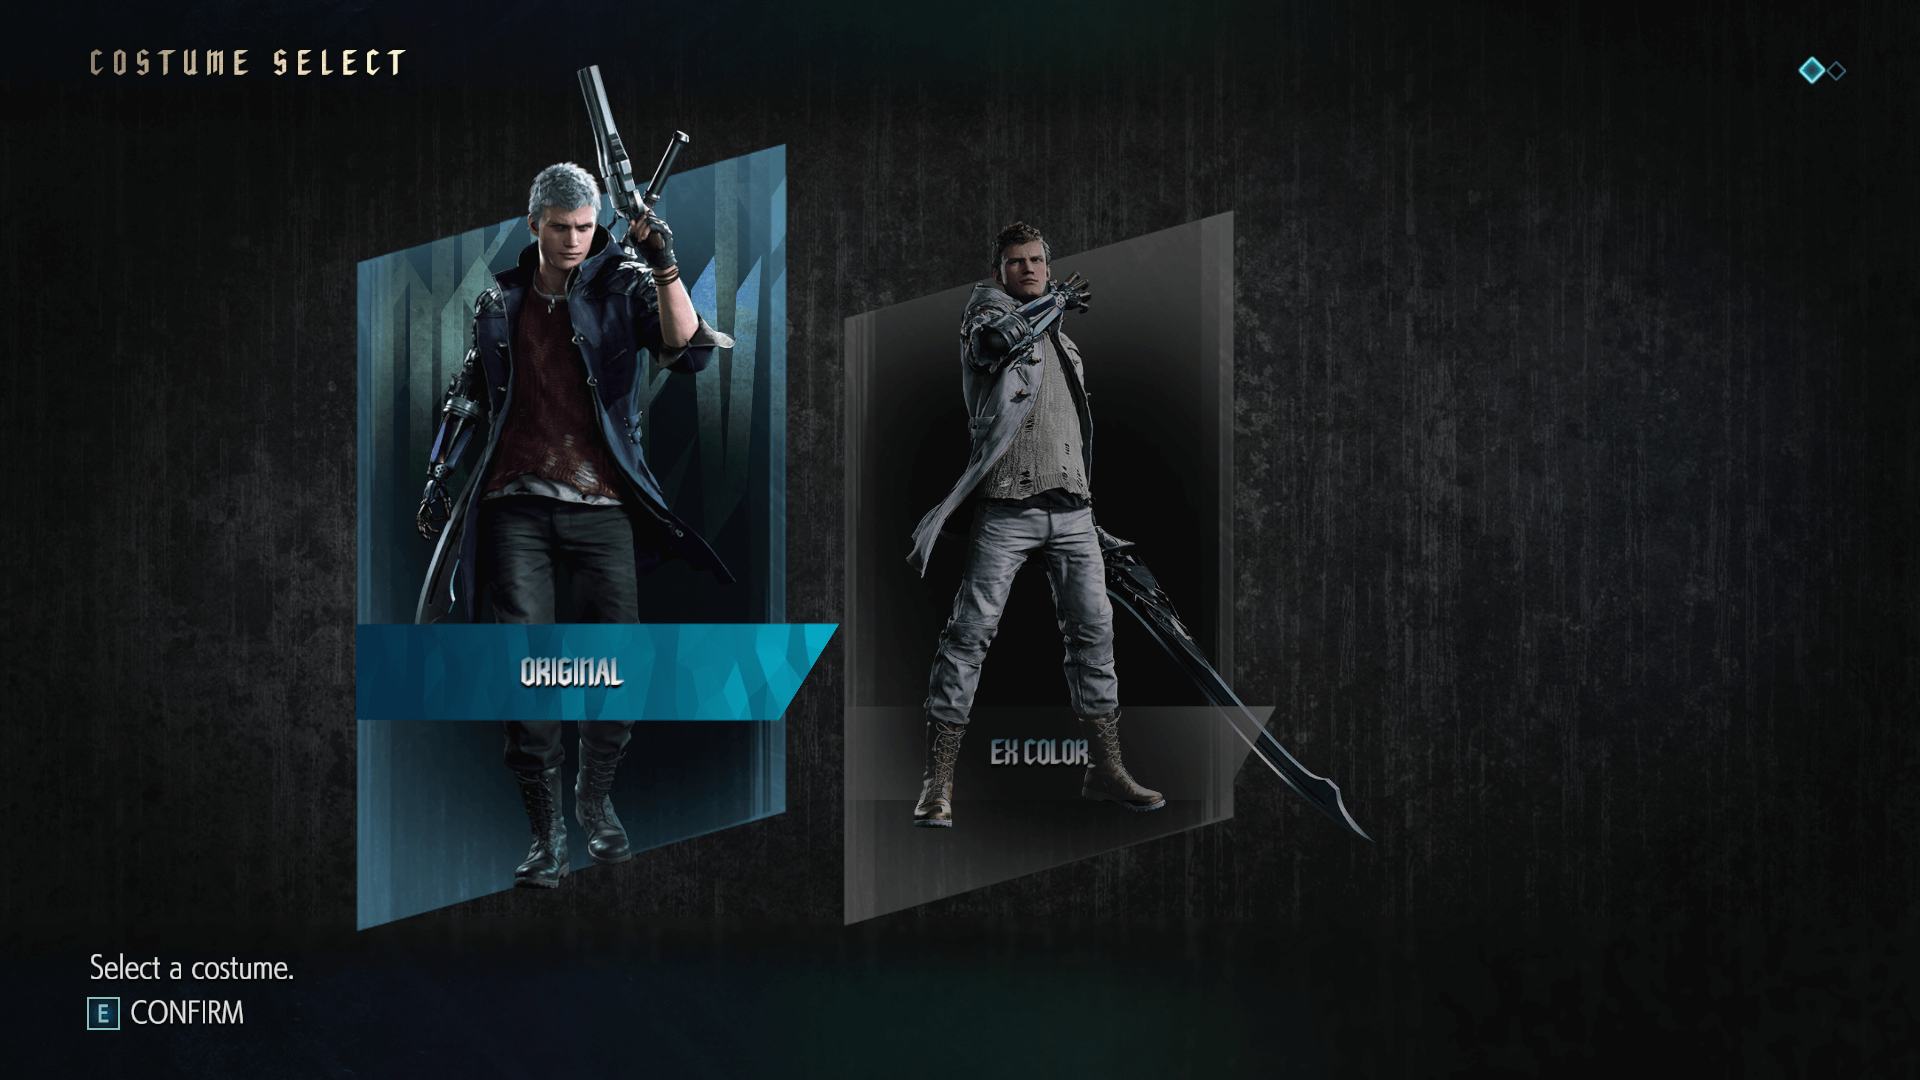 Costume select screenshot of Devil May Cry 5 video game interface.